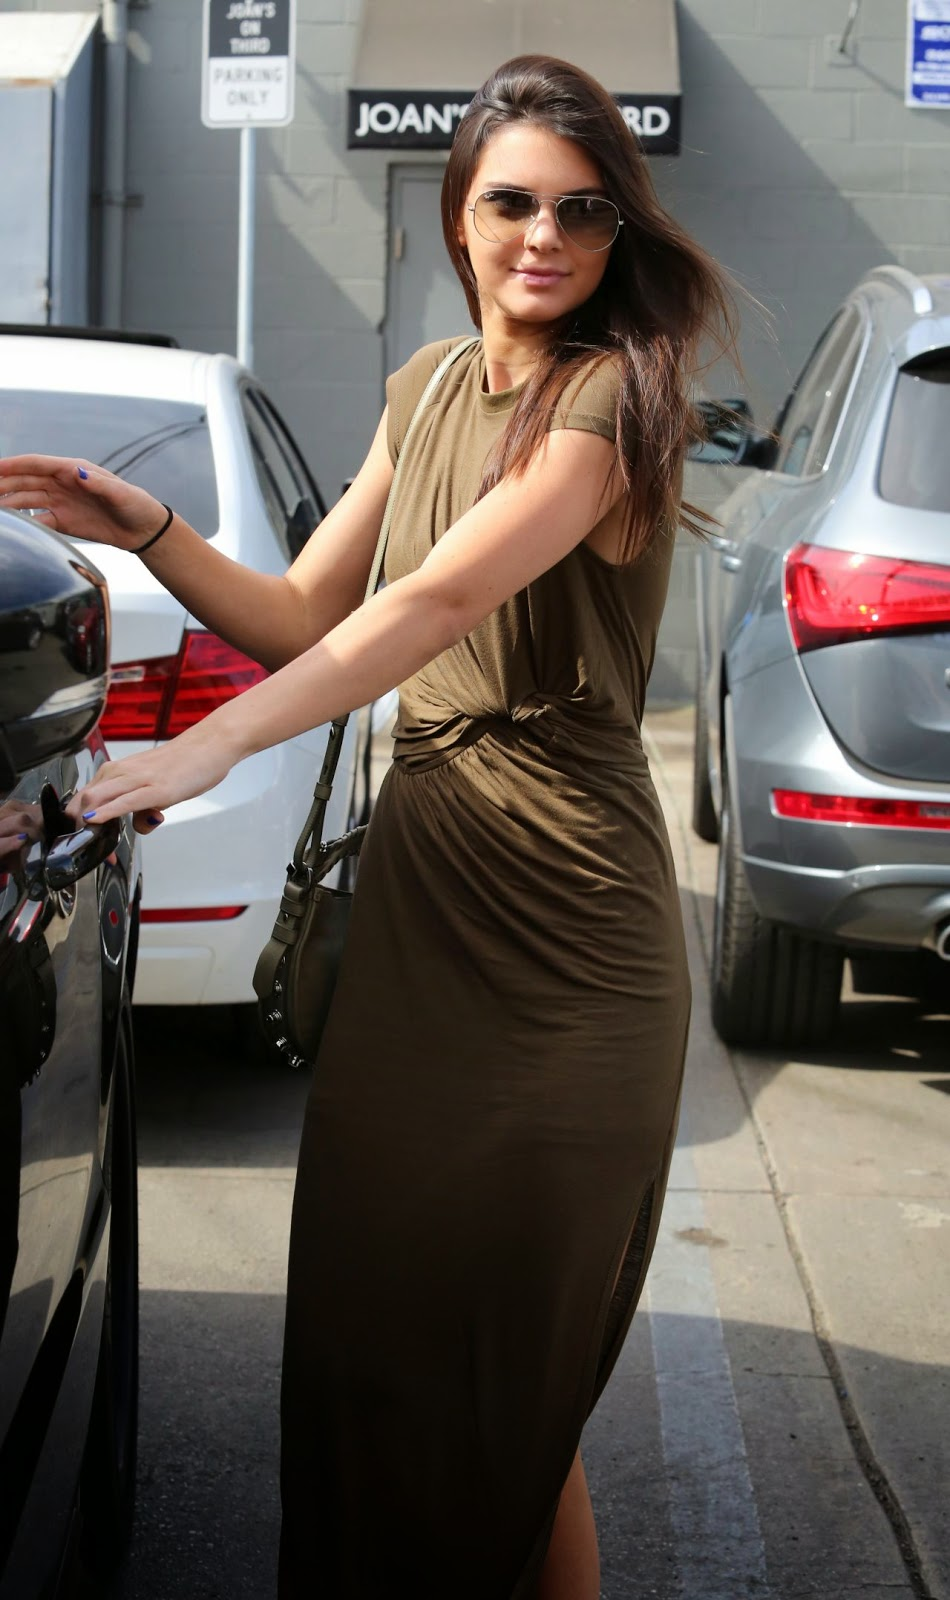 Kendall Jenner in an Eleven Paris maxi dress in Beverly Hills